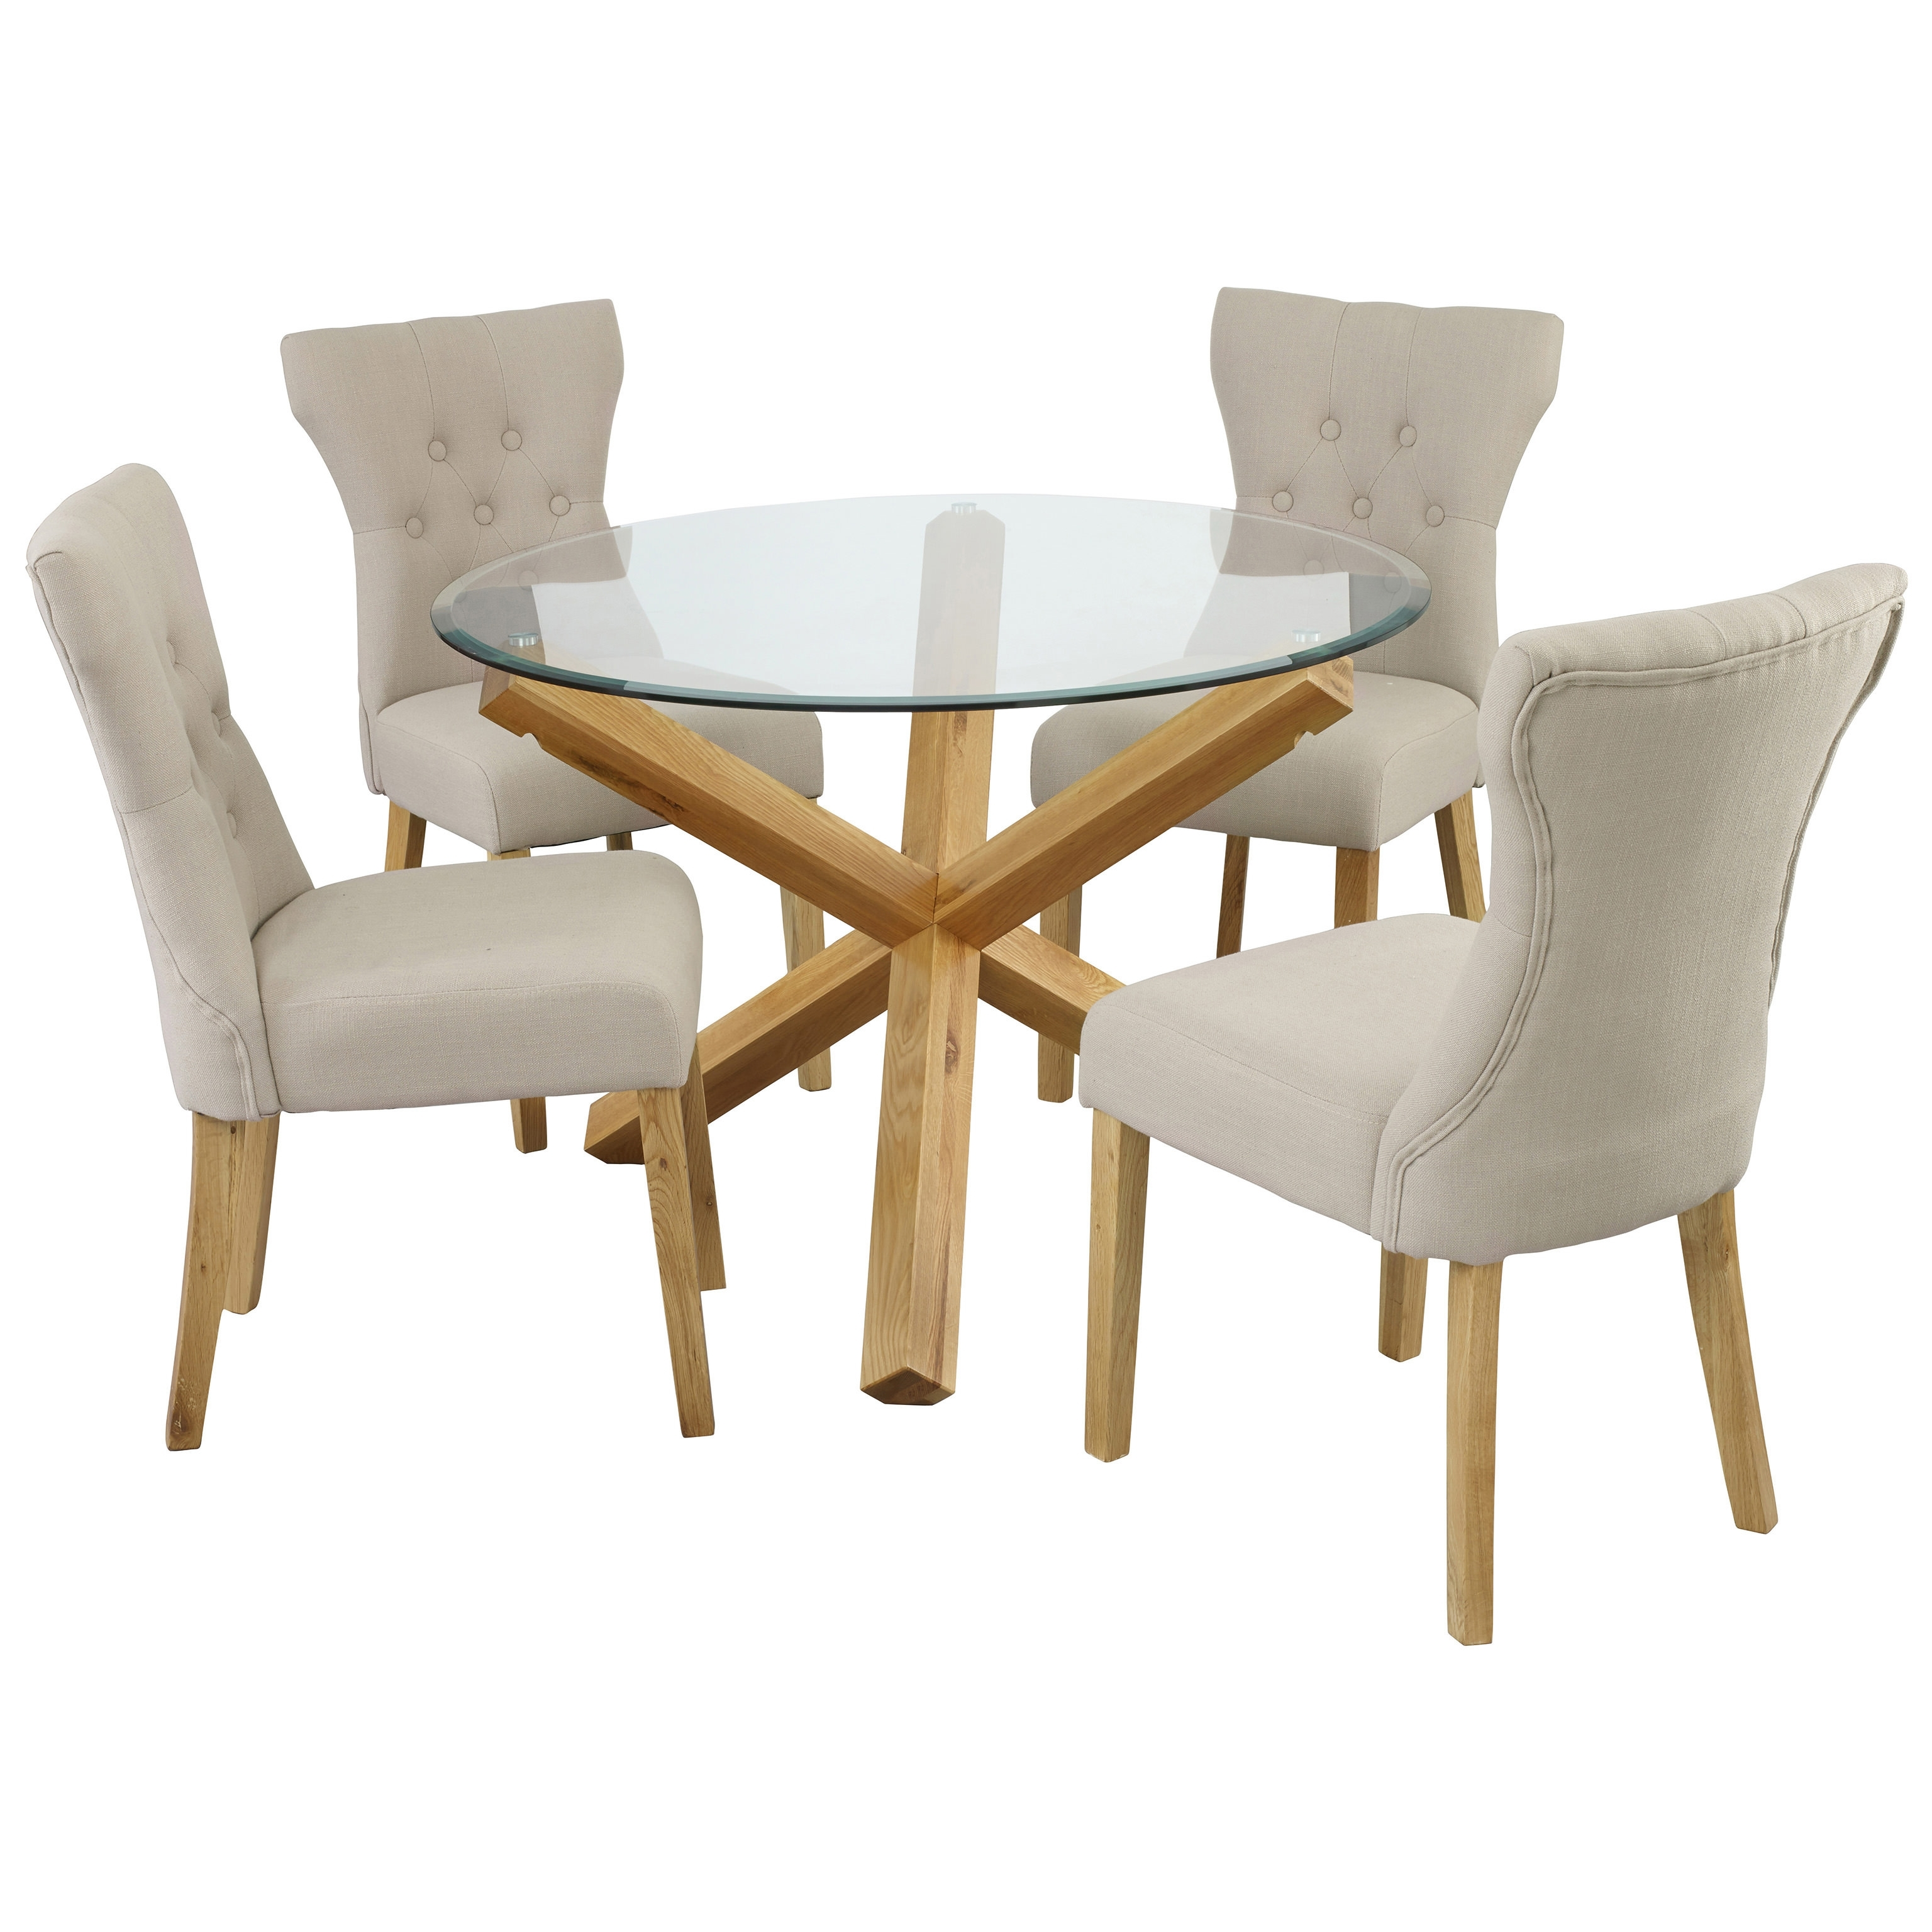 Most Recently Released Oak & Glass Round Dining Table And Chair Set With 4 Fabric Seats With Regard To Round Glass Dining Tables With Oak Legs (View 11 of 25)